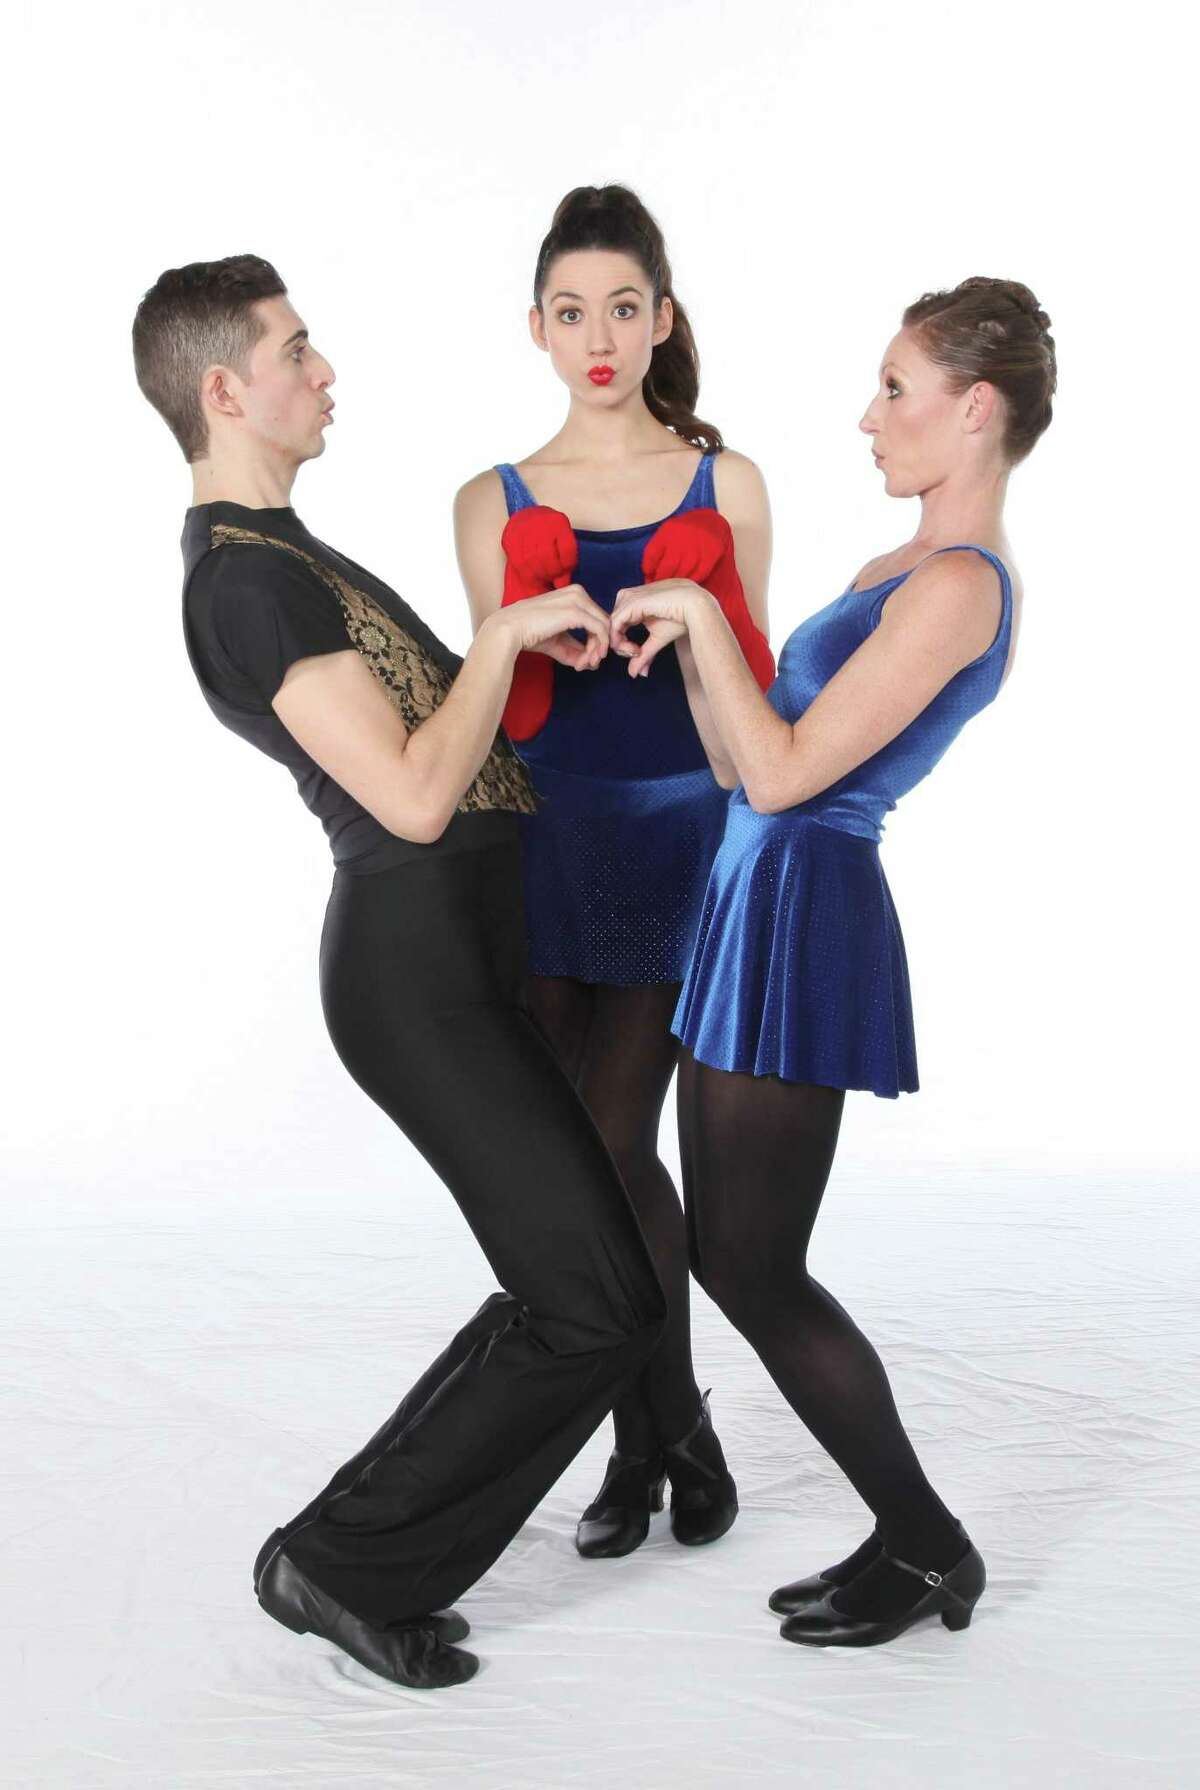 Connecticut Ballet's 35th anniversary event will include a tribute to Bob Fosse. From left, Morgan Stinnett, Claire Mazza and Melissa Weber, all Connecticut Ballet soloists.